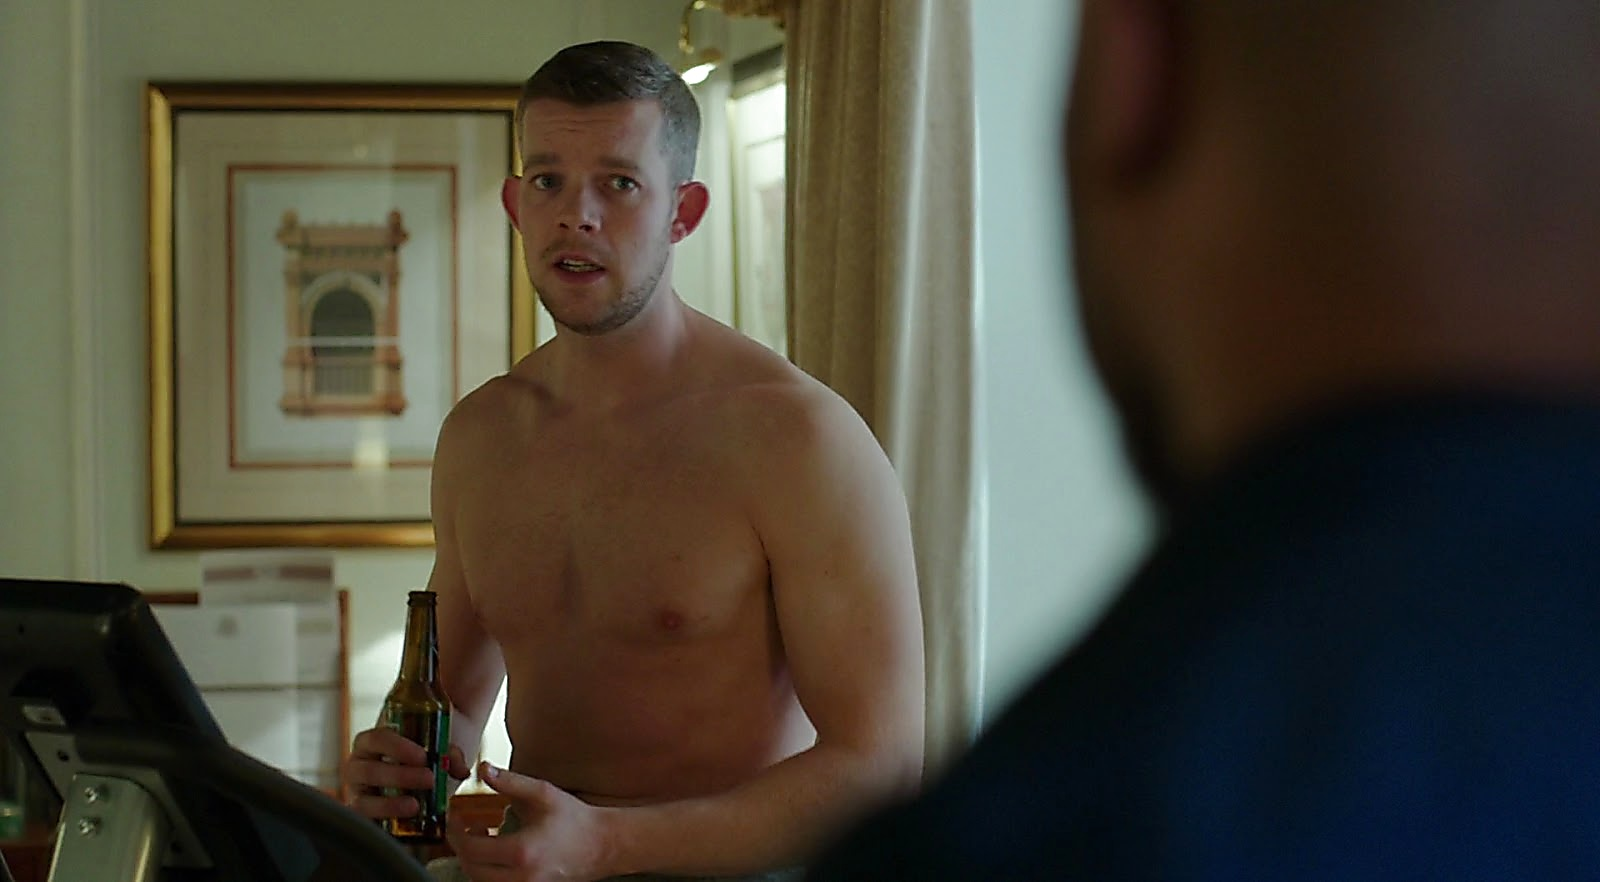 Russell Tovey sexy shirtless scene April 17, 2017, 9am